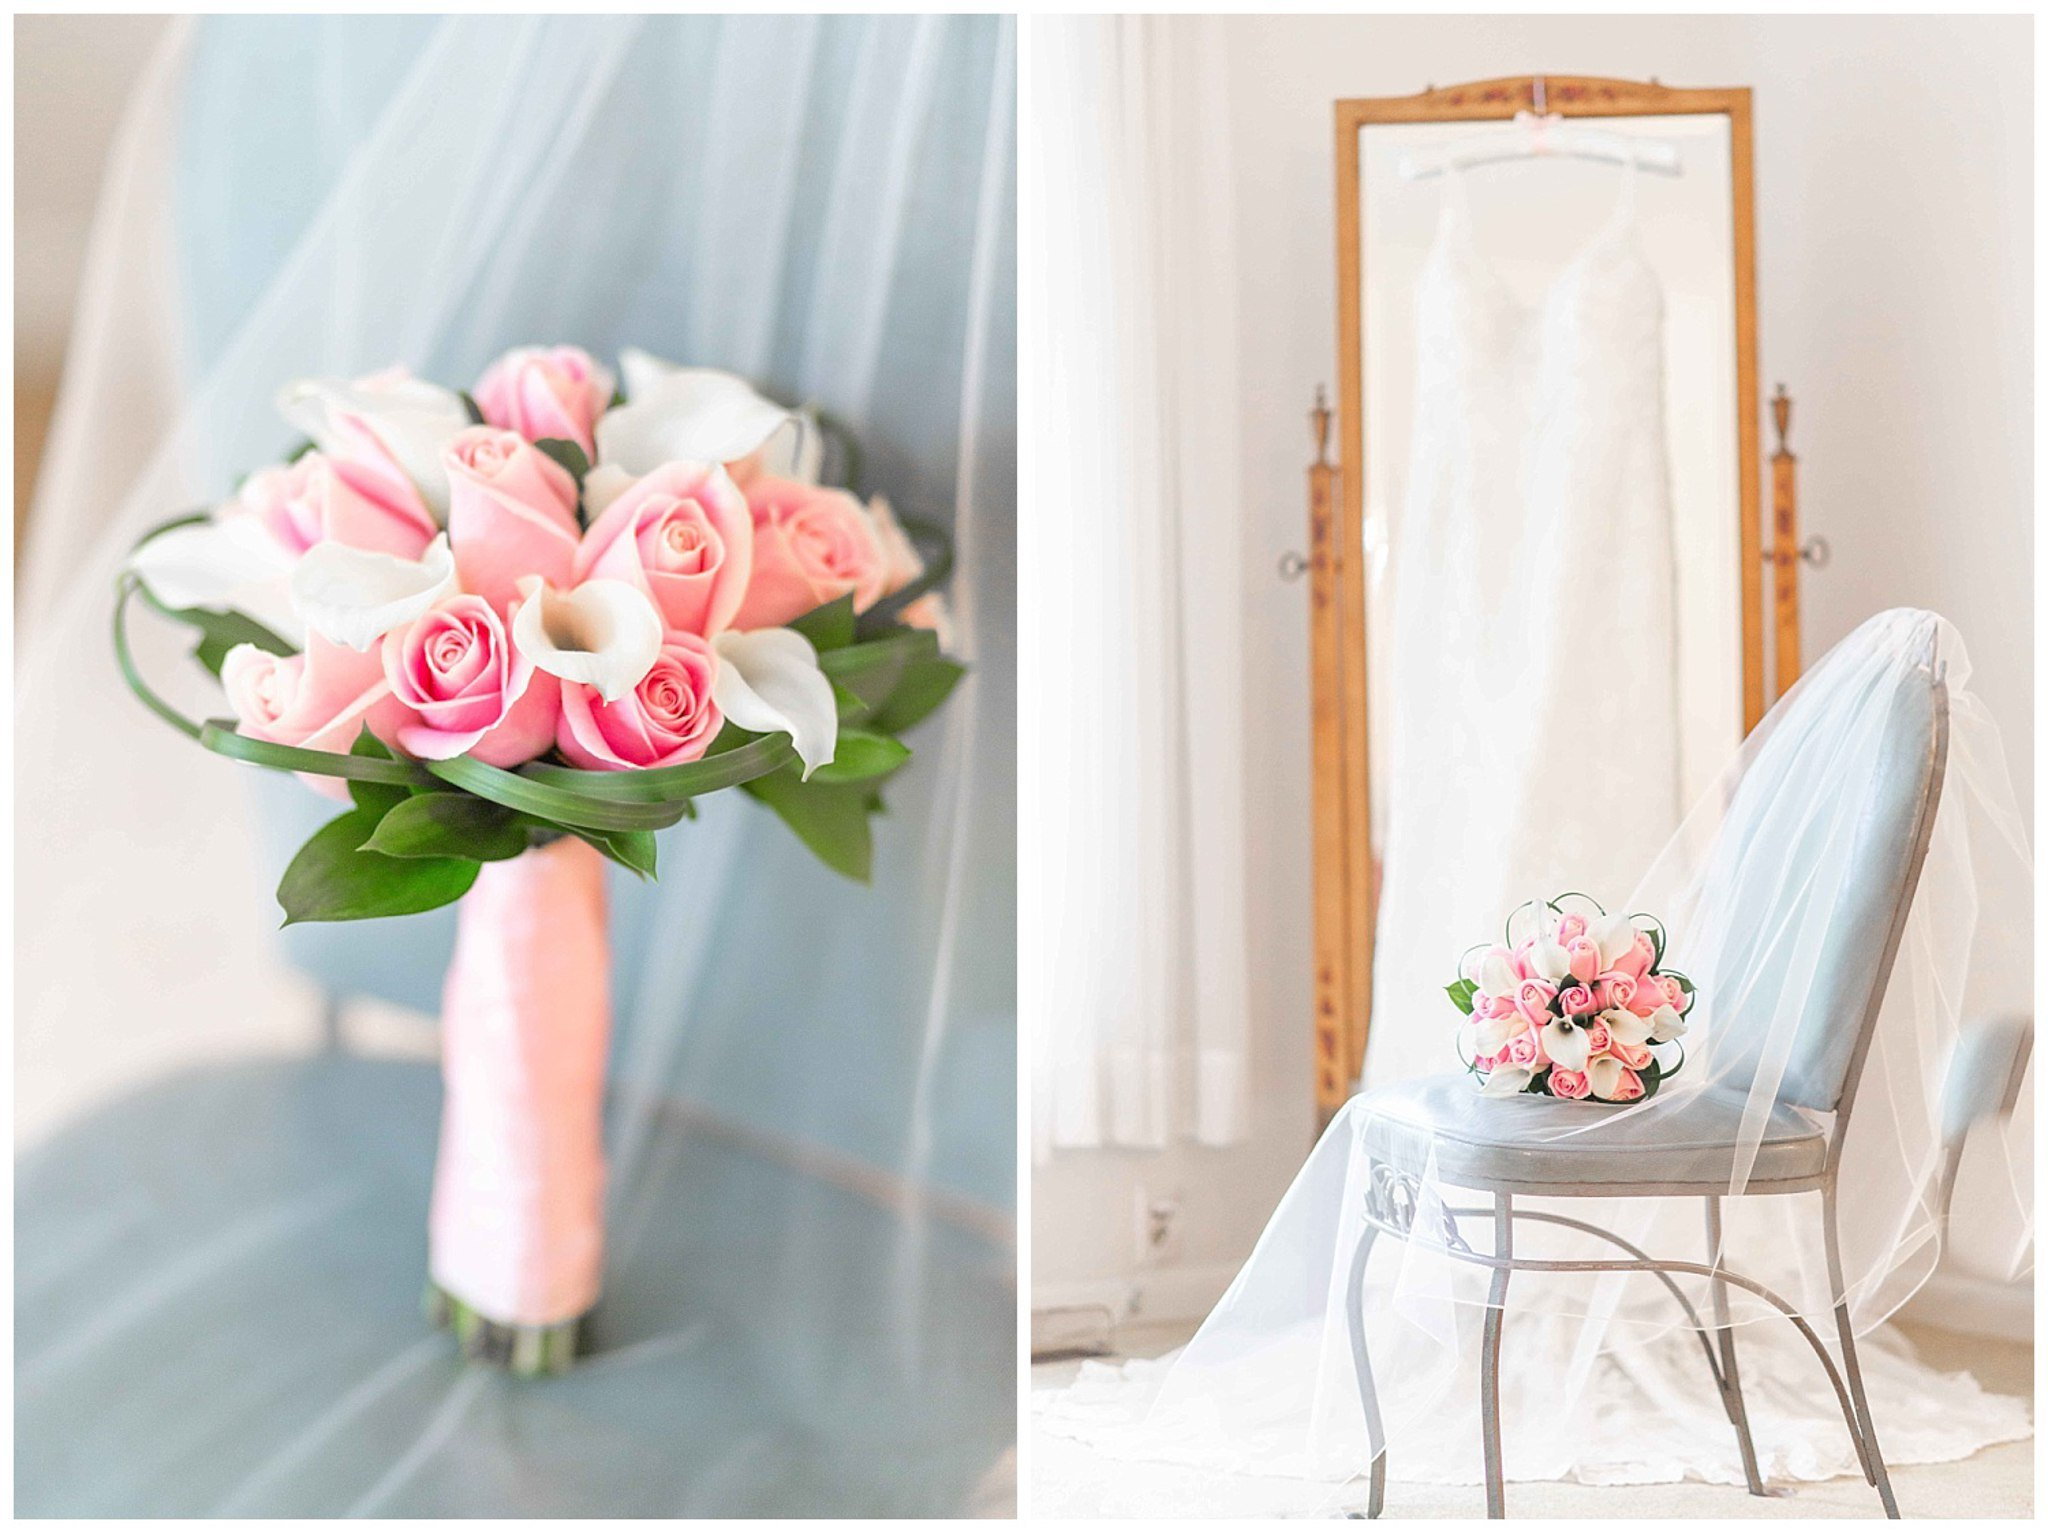 top 5 tips,Wedding dress,Say Yes,wedding planning,baltimore wedding photographers, Say YES To The DRESS!! Top 5 Tips on Picking the PERFECT Wedding Dress, Fine Art Wedding Photographer Baltimore MD